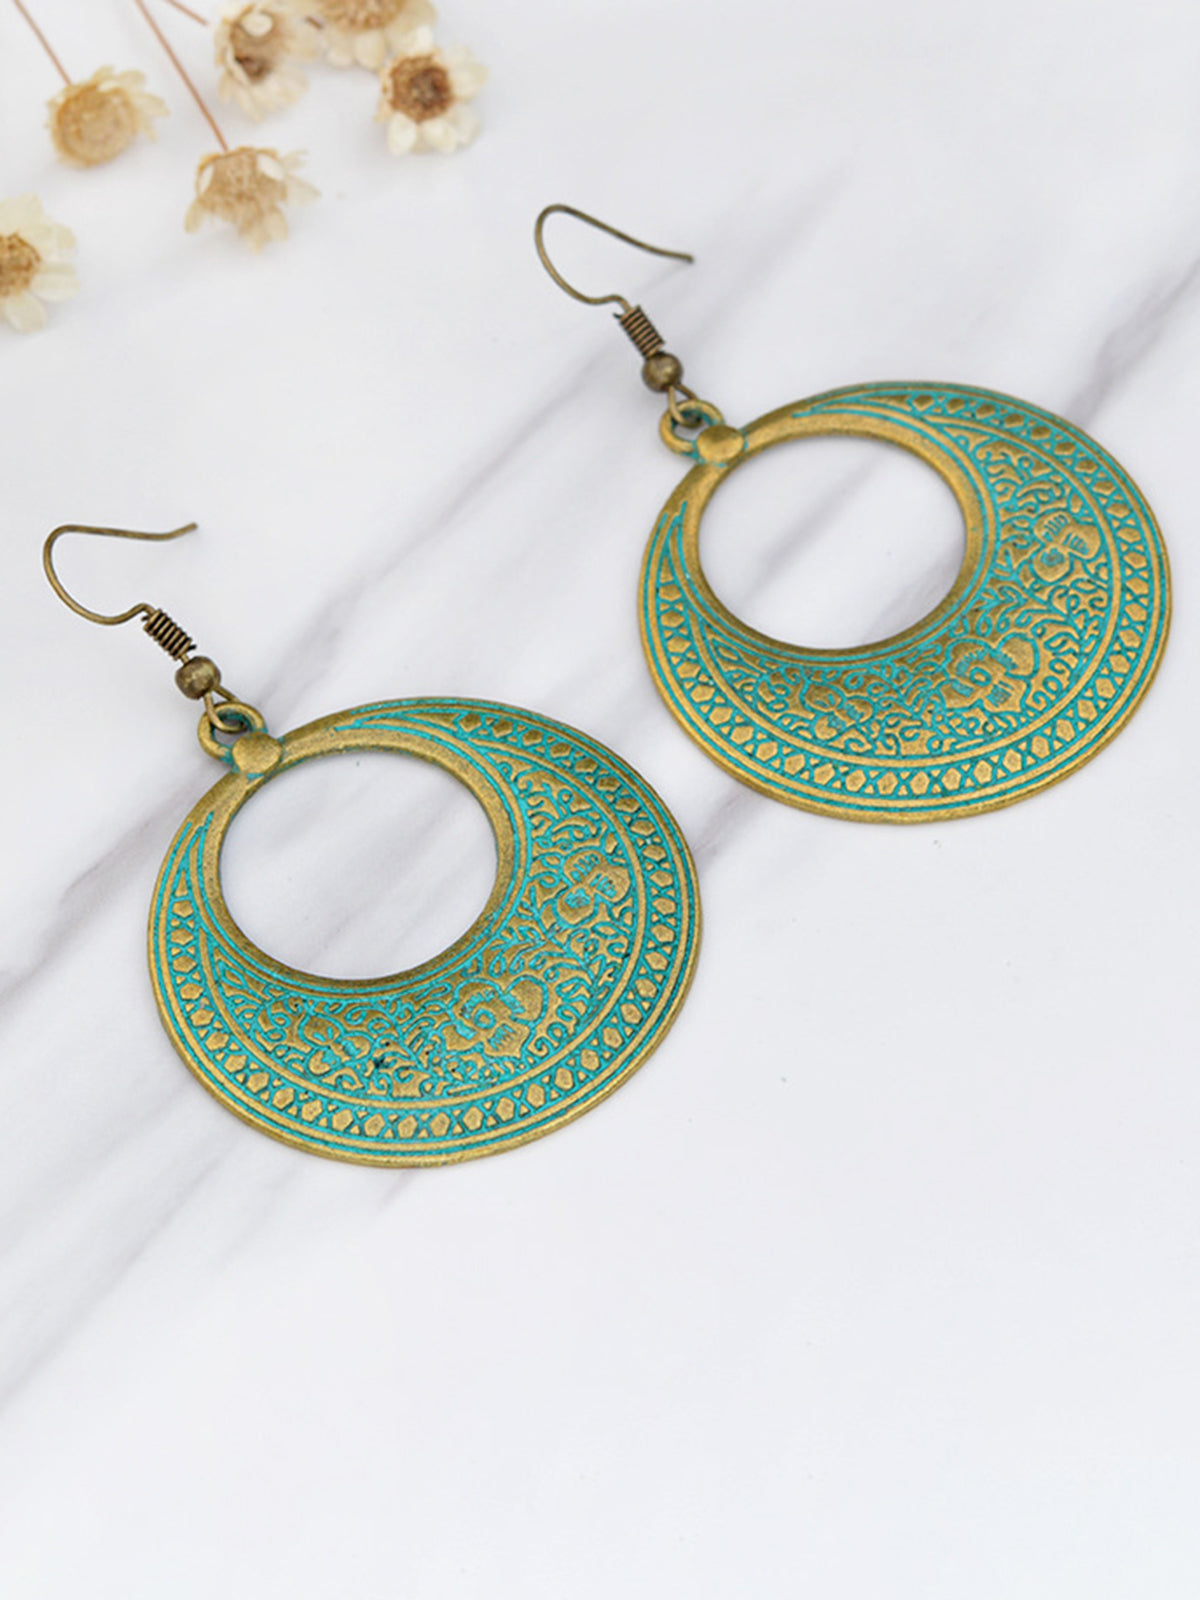 Womens Vintage Round Alloy Earrings - kattystory